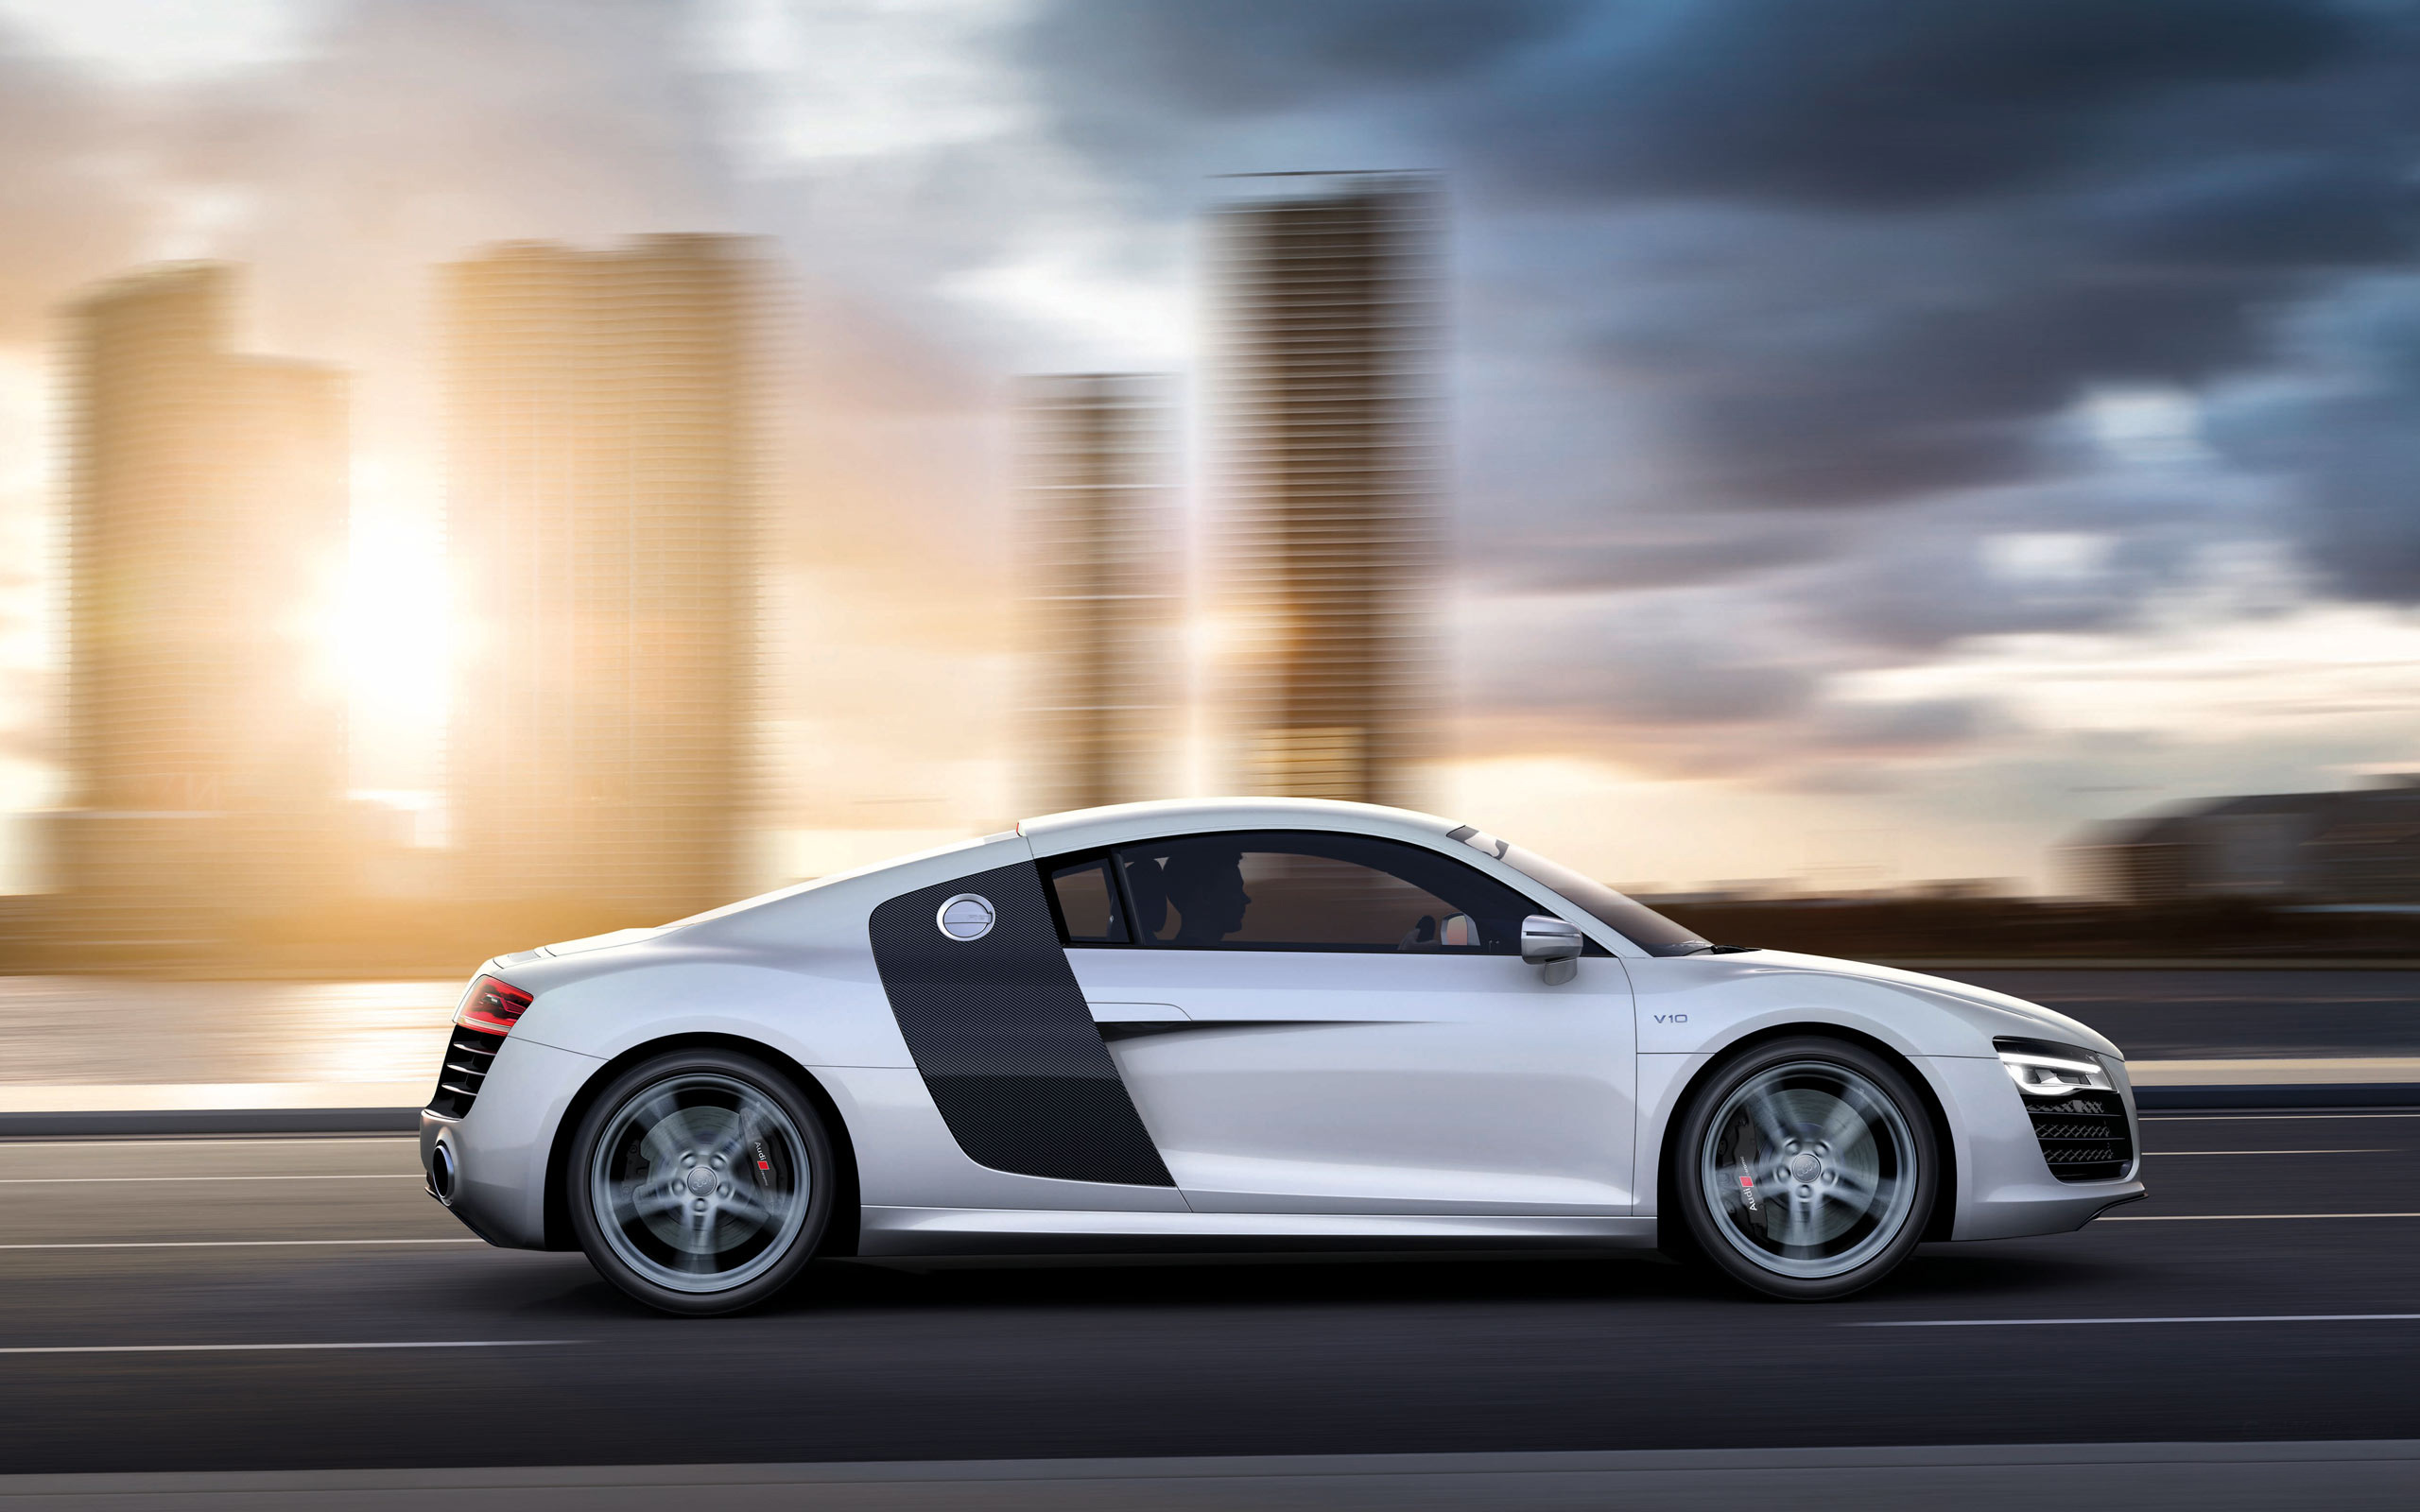 Ferrari Car Wallpaper Download 2013 Audi R8 6 Wallpaper Hd Car Wallpapers Id 2933